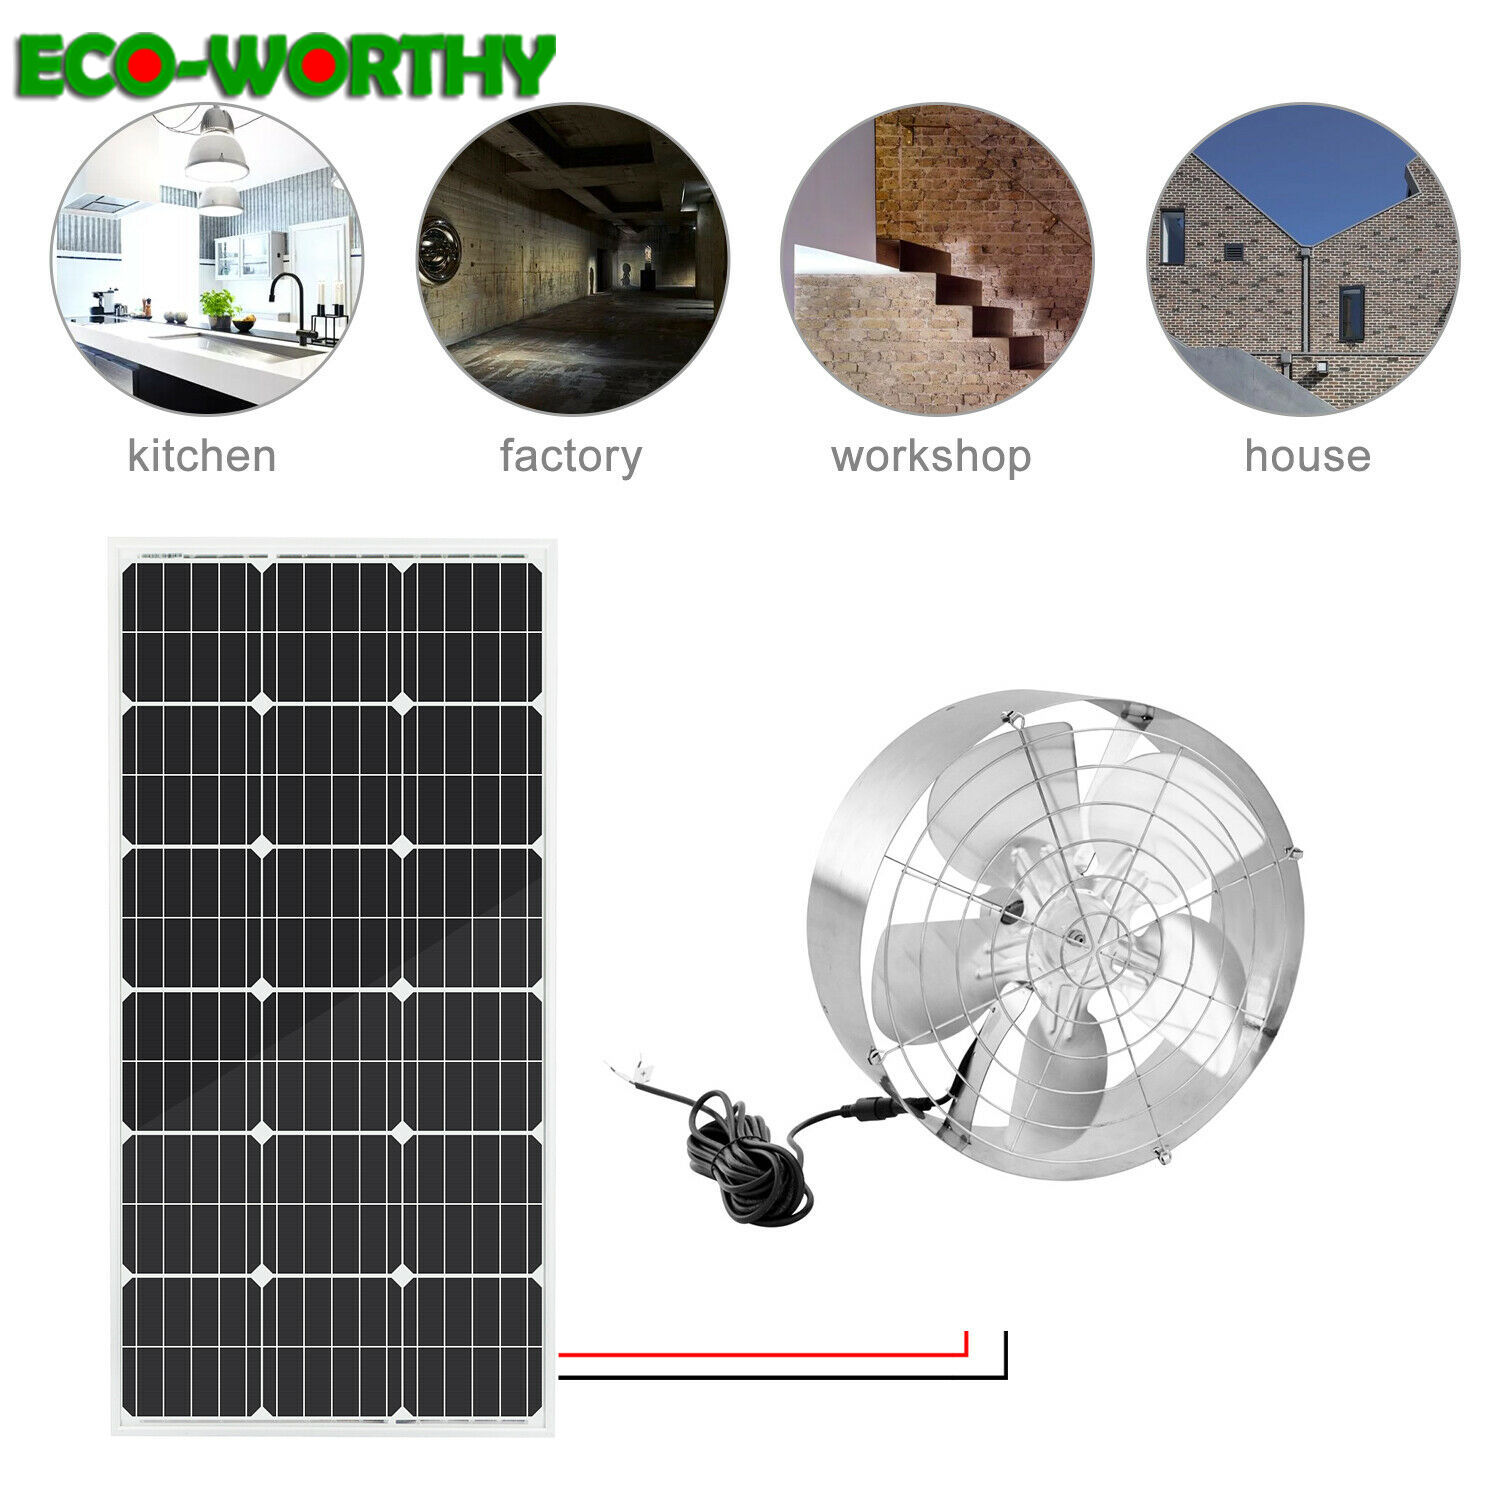 ECOworthy 100W mono Solar power Panel & 65W 3000 CFM Cooling solar Vent Fan Ventilation for Home Kitchen solar power system kits